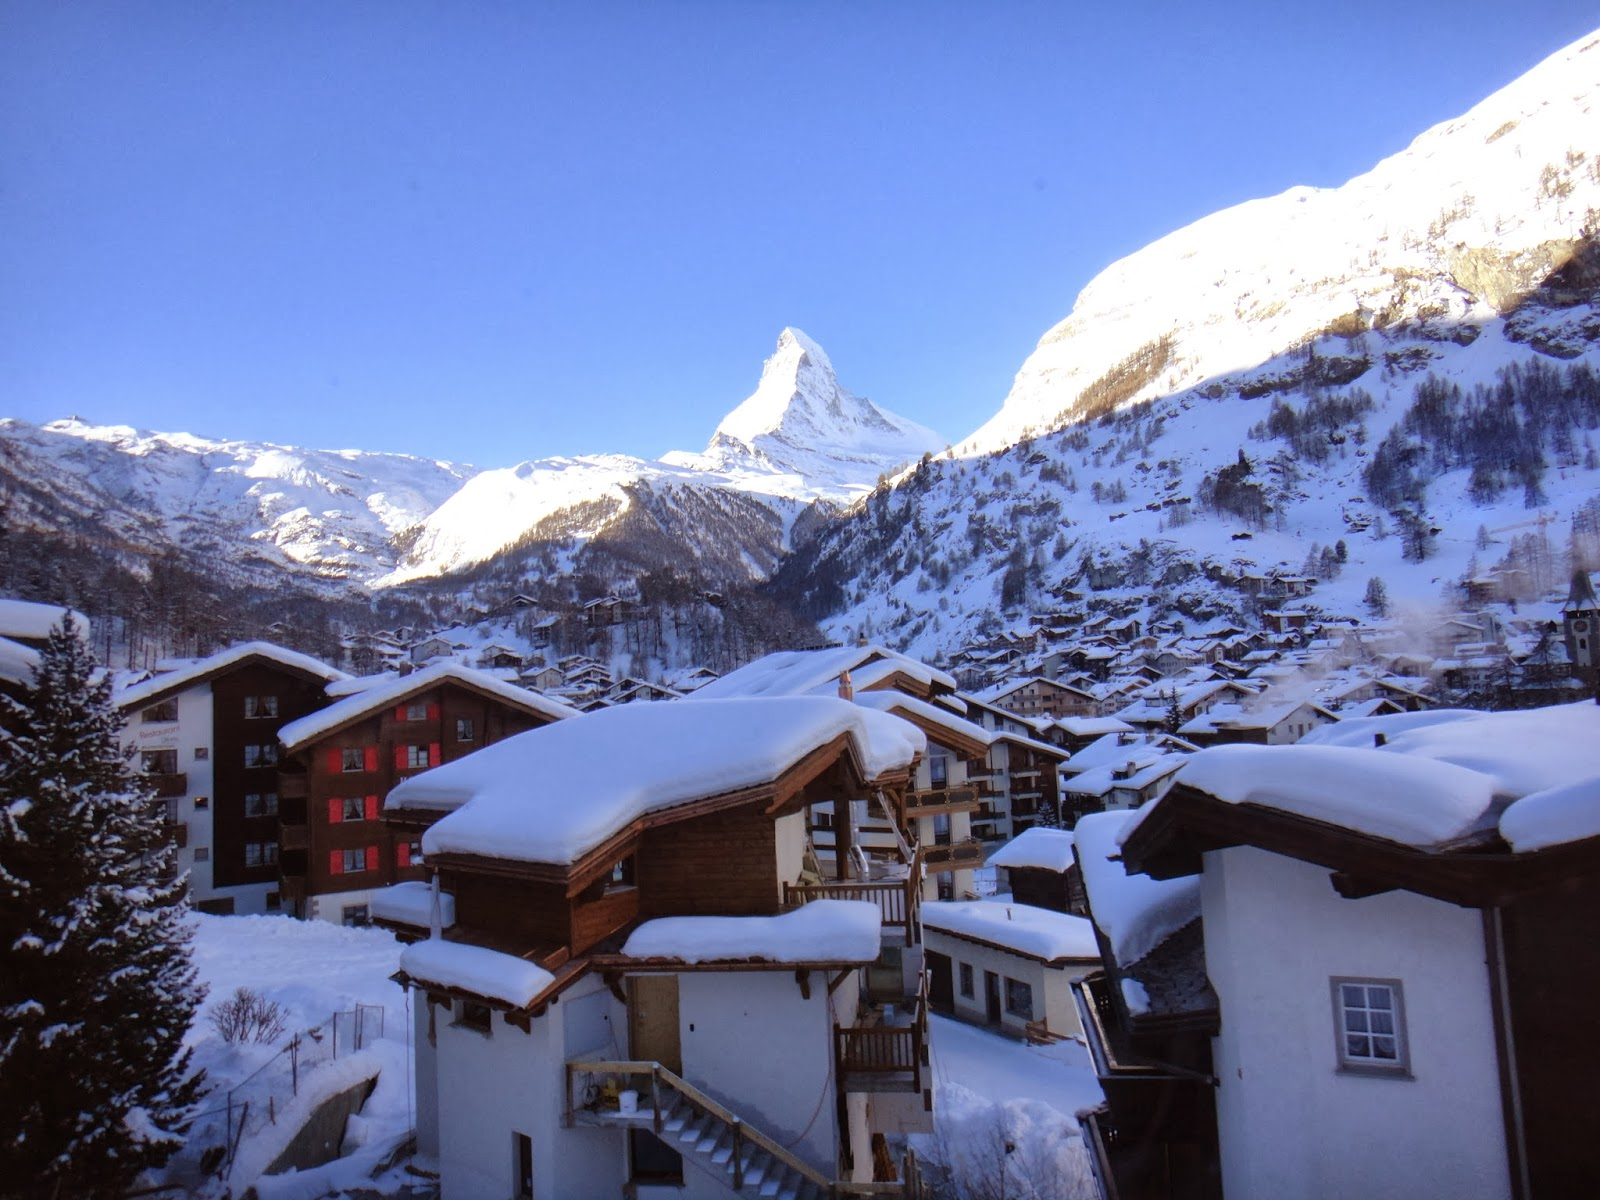 Lifestyle, Skiing, Switzerland, Zermatt, Holiday, Winter, Sport, Ski, Ski Holiday, Ski Resort, Travel, Snow, Travelling, Pictures, Zermatt Switzerland, Skier, Snowboarding, Ski Zermatt, Ski Zermatt Switzerland,